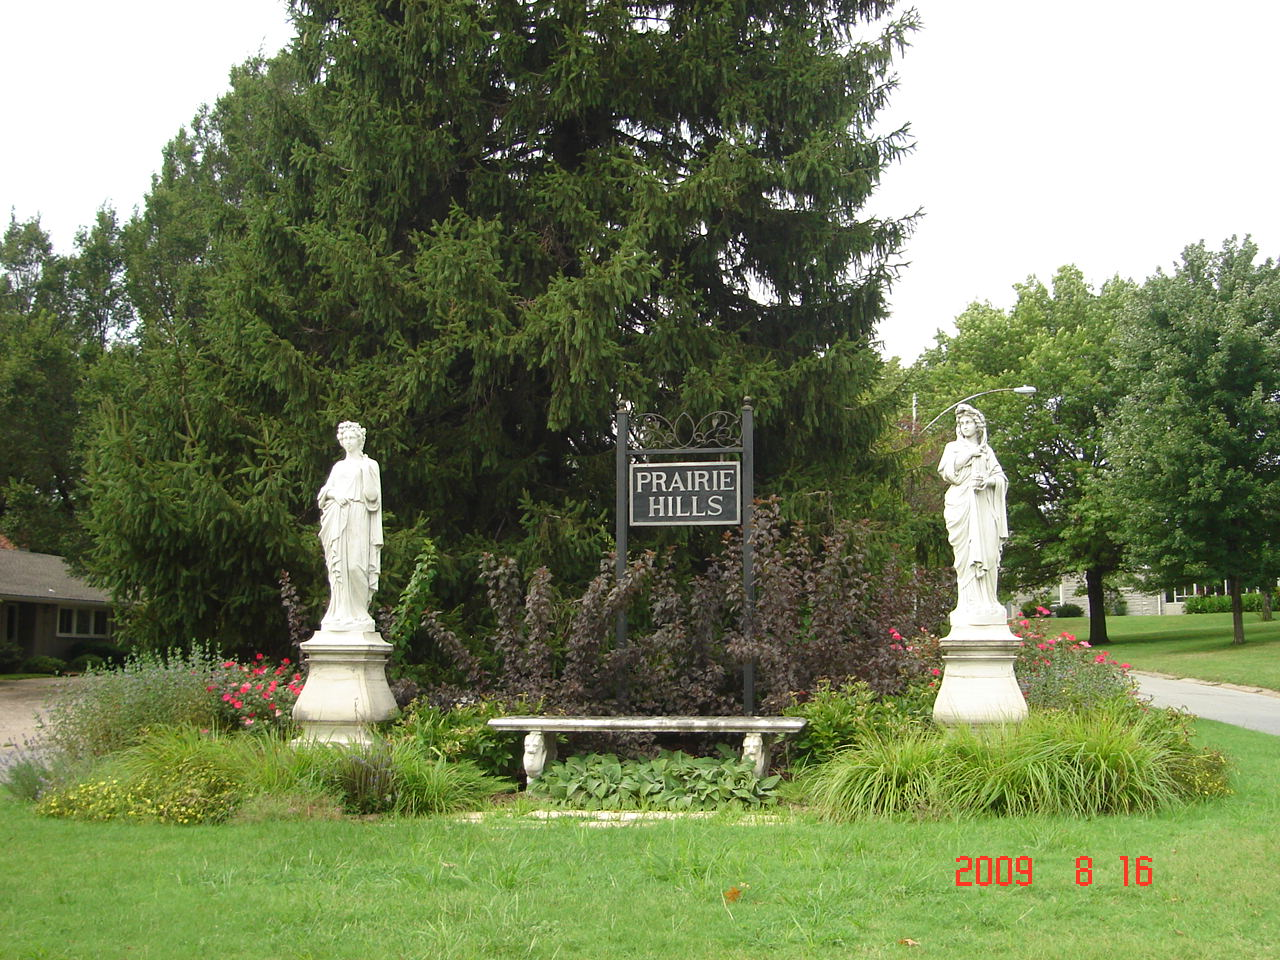 Kansas johnson county prairie village - As An Active Member Of The Hoa For Prairie Hills It Is With Much Pride That I State We In Prairie Village Have Some Great Features Such As